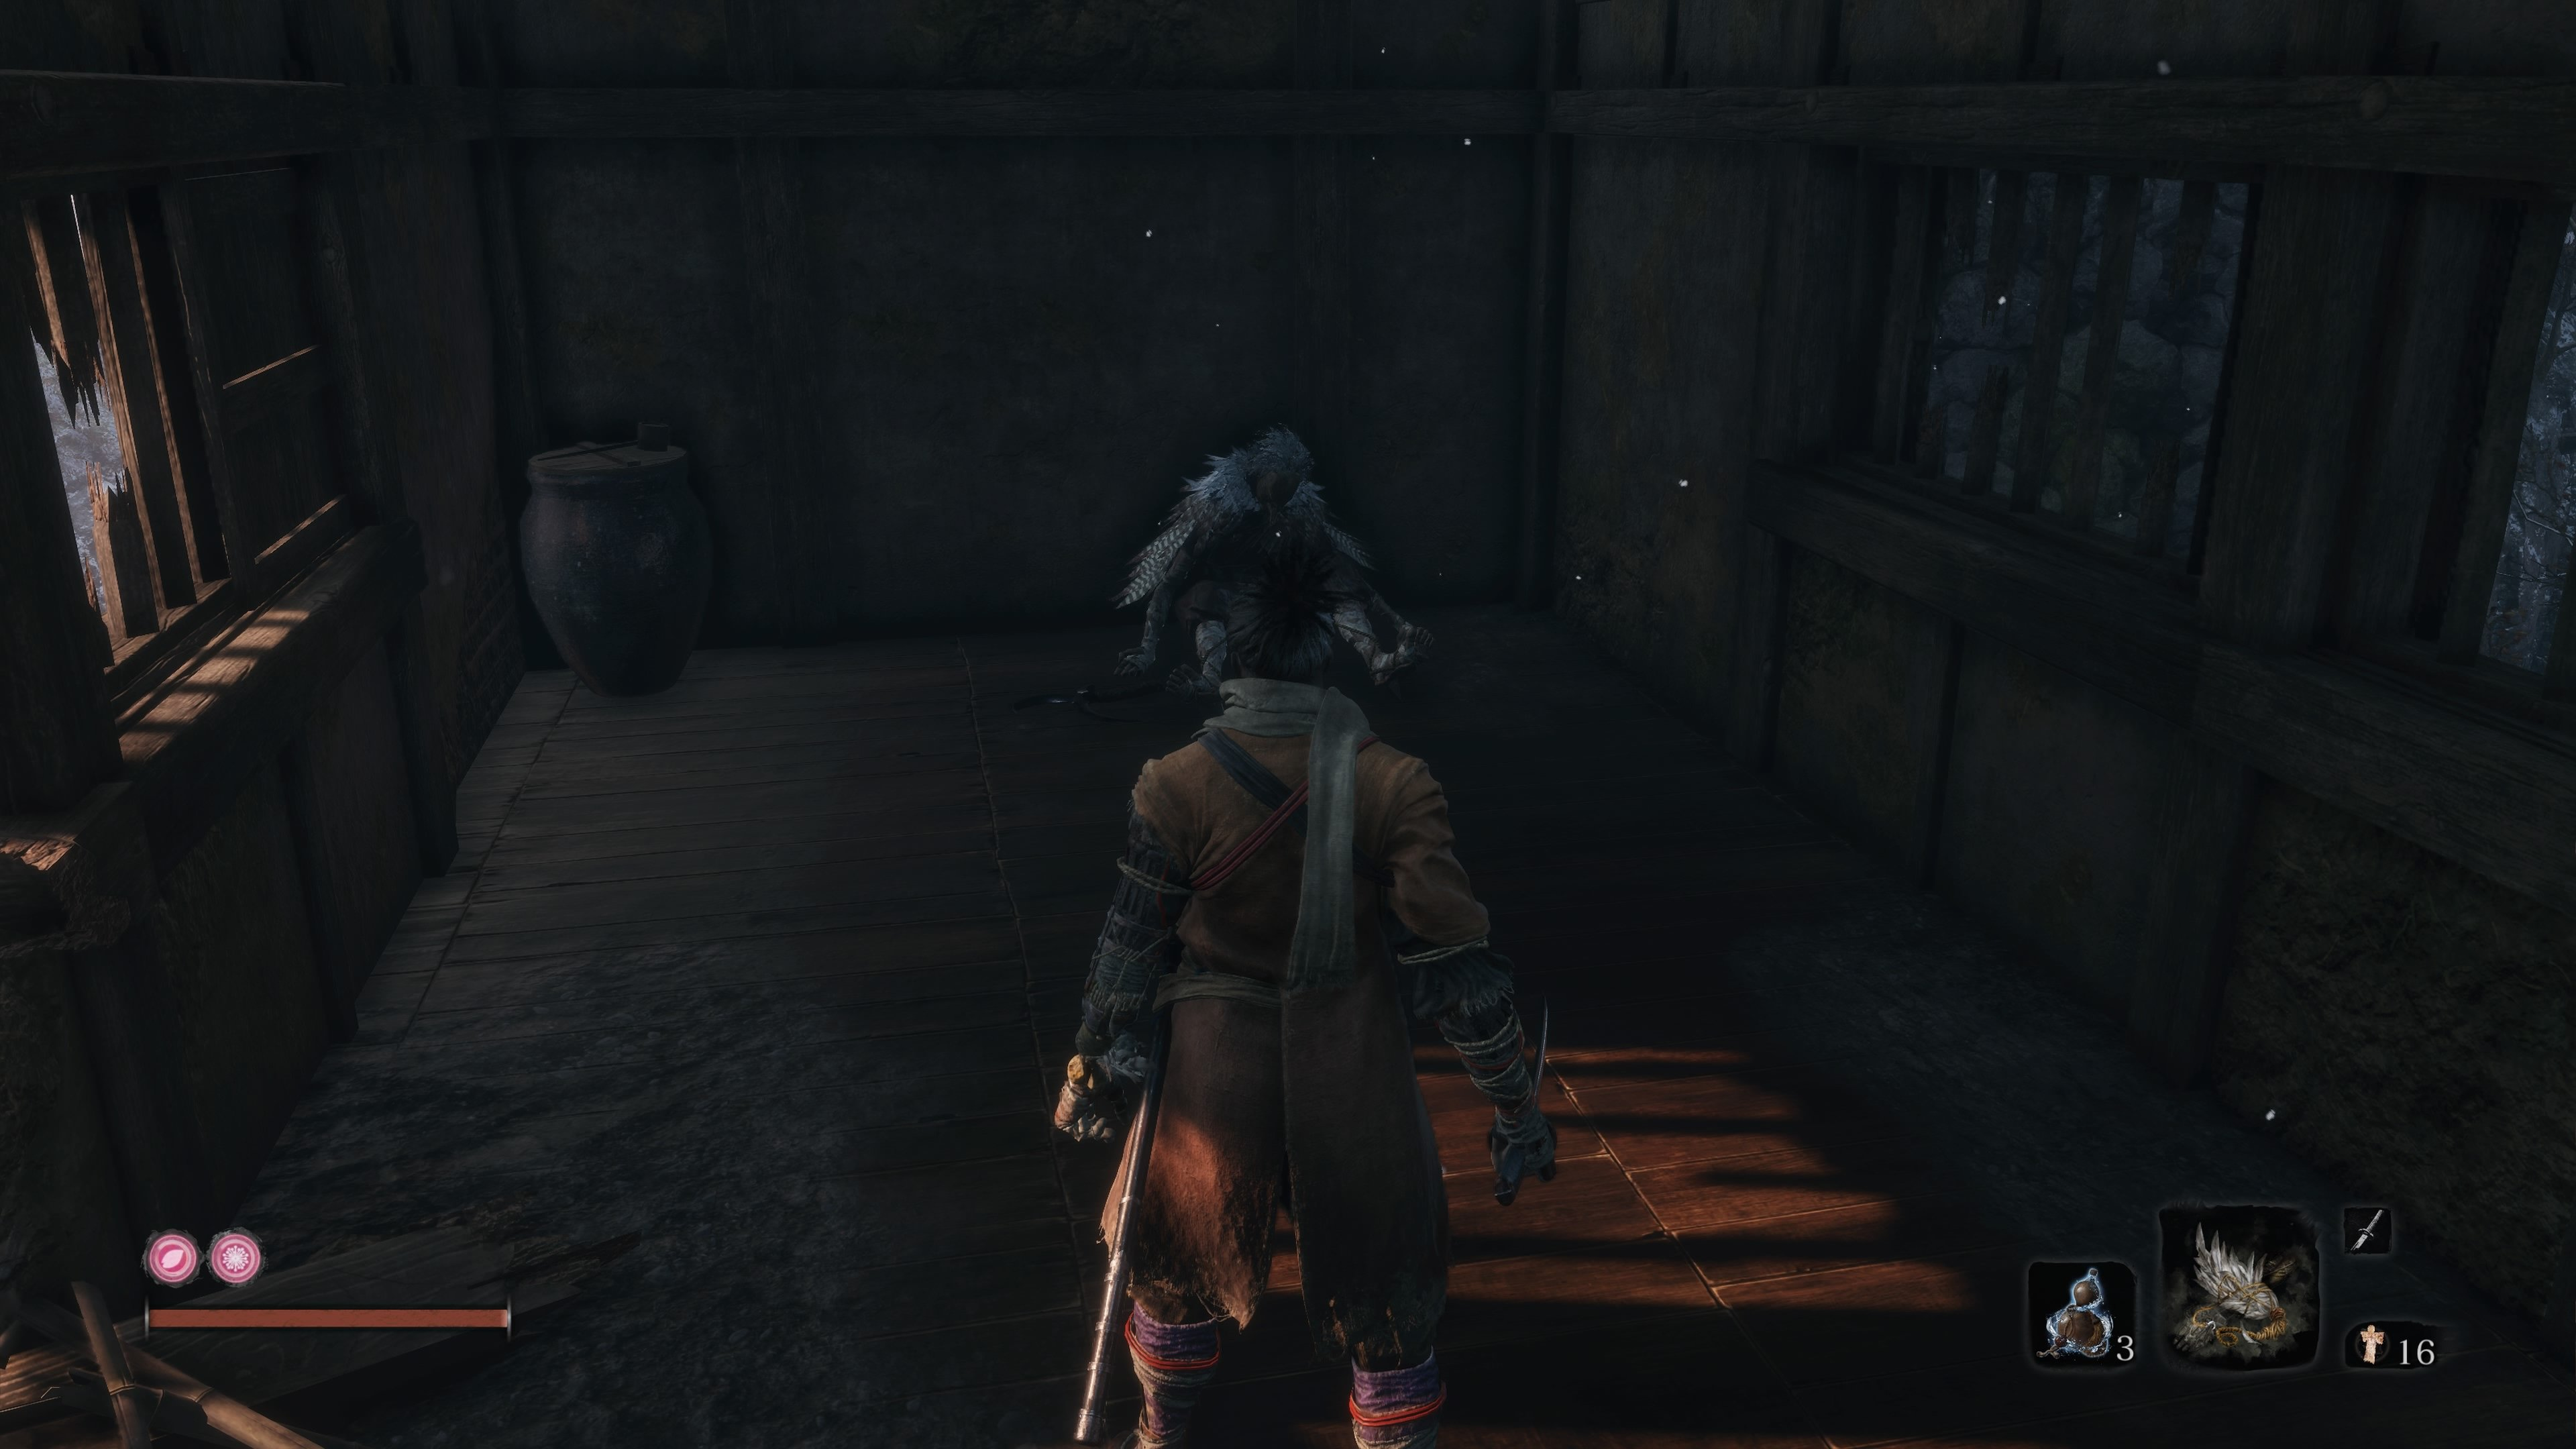 Loaded Shuriken location in Sekiro: Shadows Die Twice